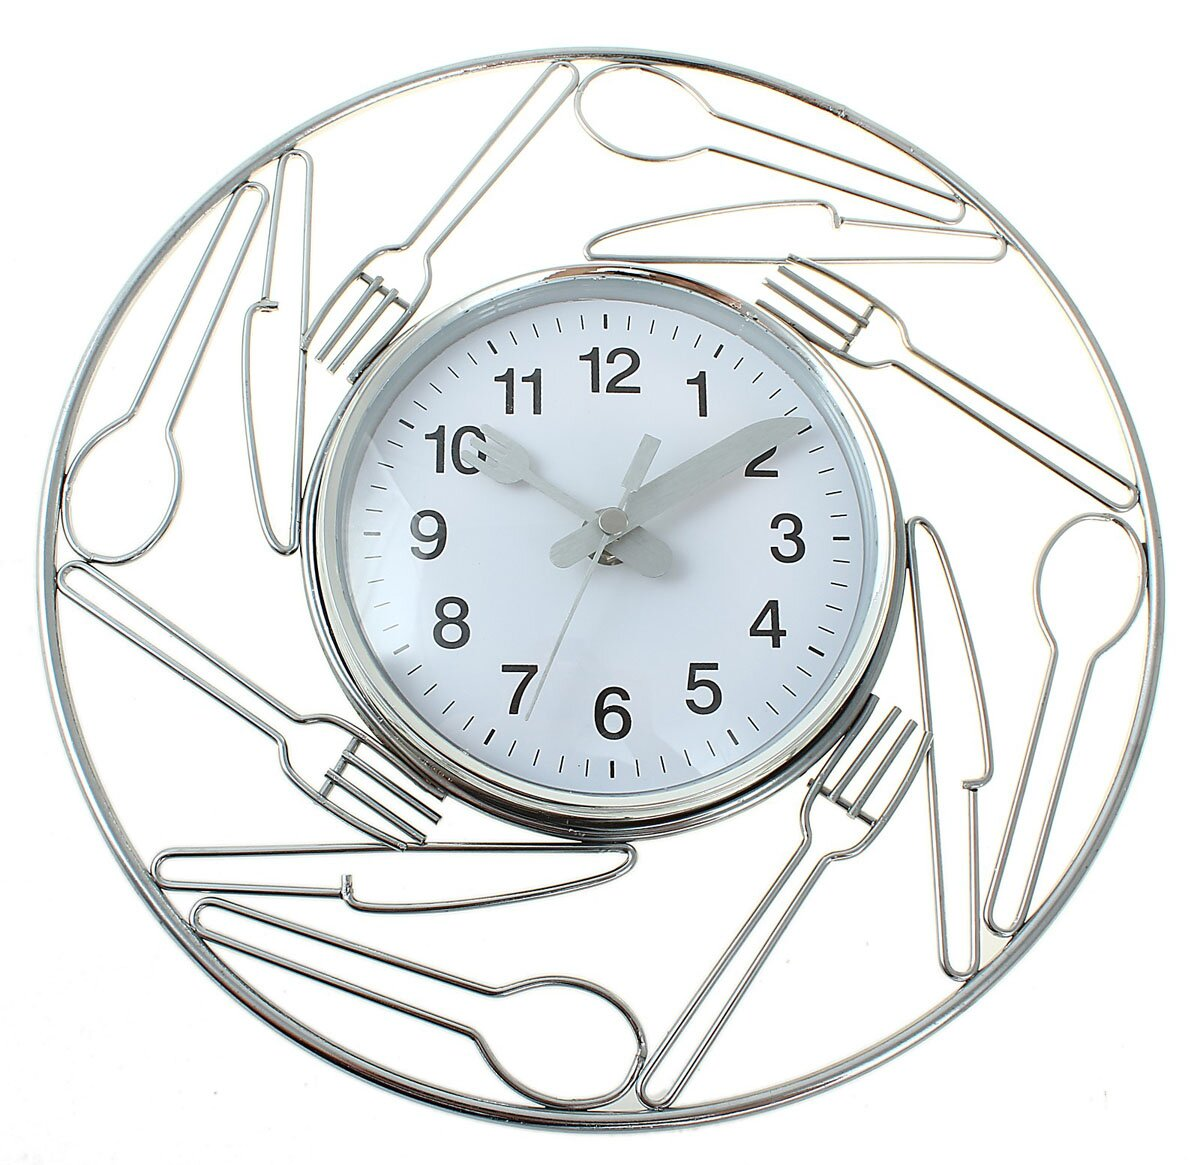 Brilliant Beautiful Wall Clocks for Kitchens 1200 x 1165 · 243 kB · jpeg